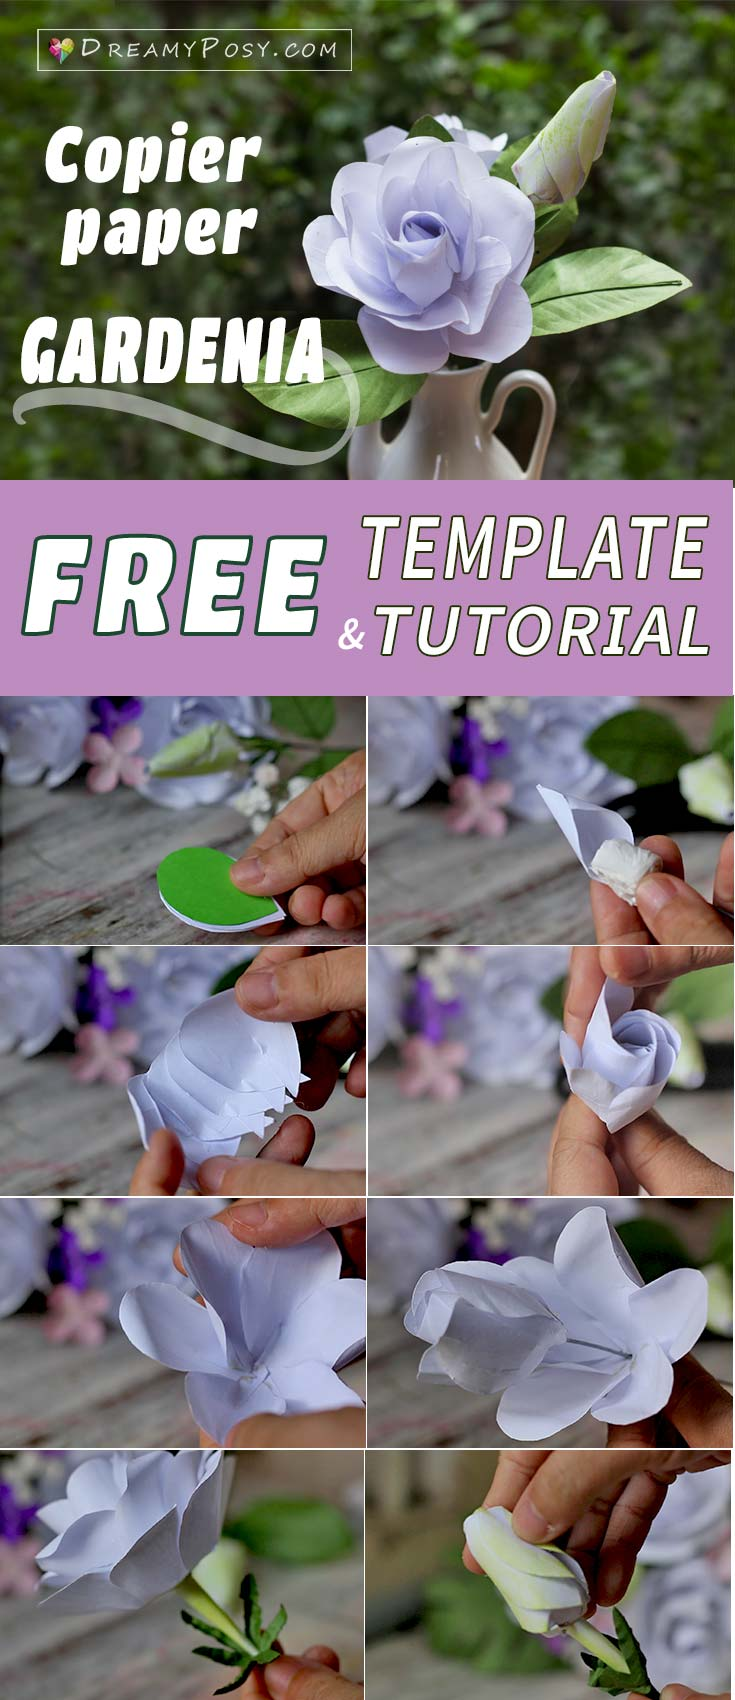 How To Make Gardenia Paper Flower And Foliage Free Template